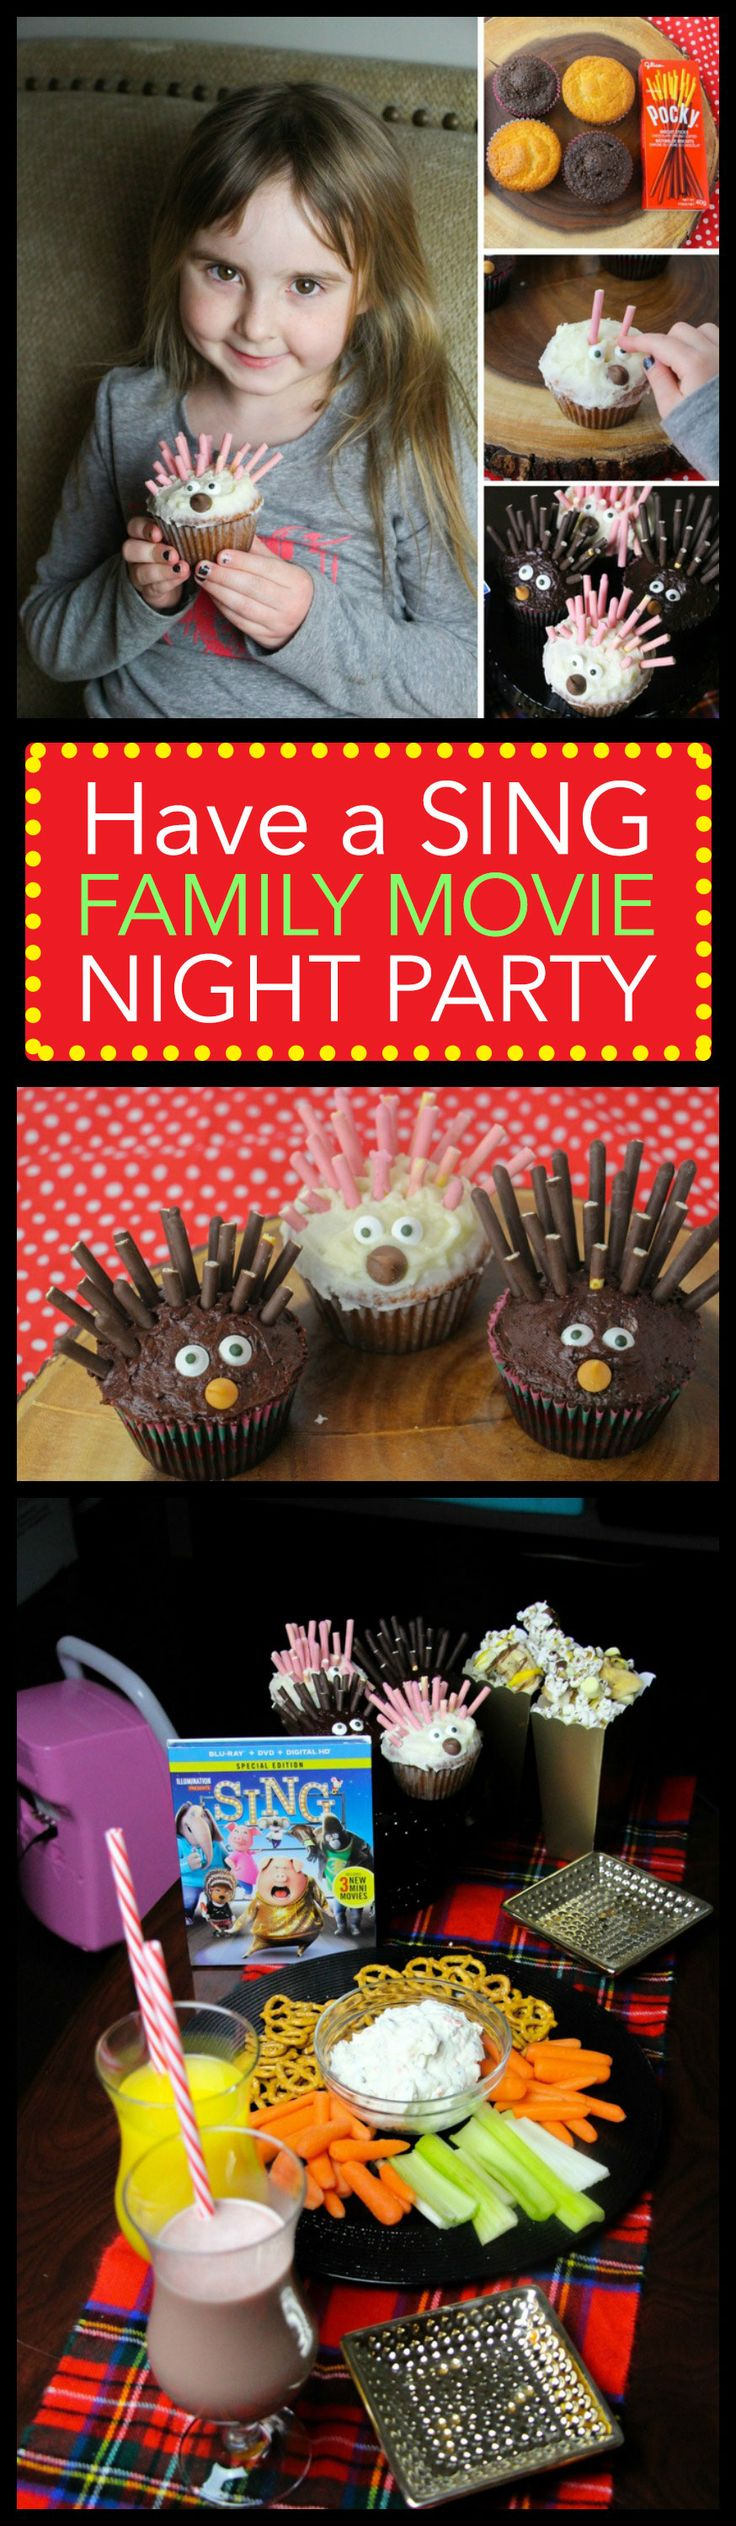 SING Special Edition is now out on DVD and Blu-Ray, so we made porcupine cupcakes, gorilla munch popcorn and several other goodies inspired by SING for family movie night! #SingMovie #SingSquad #Sponsored